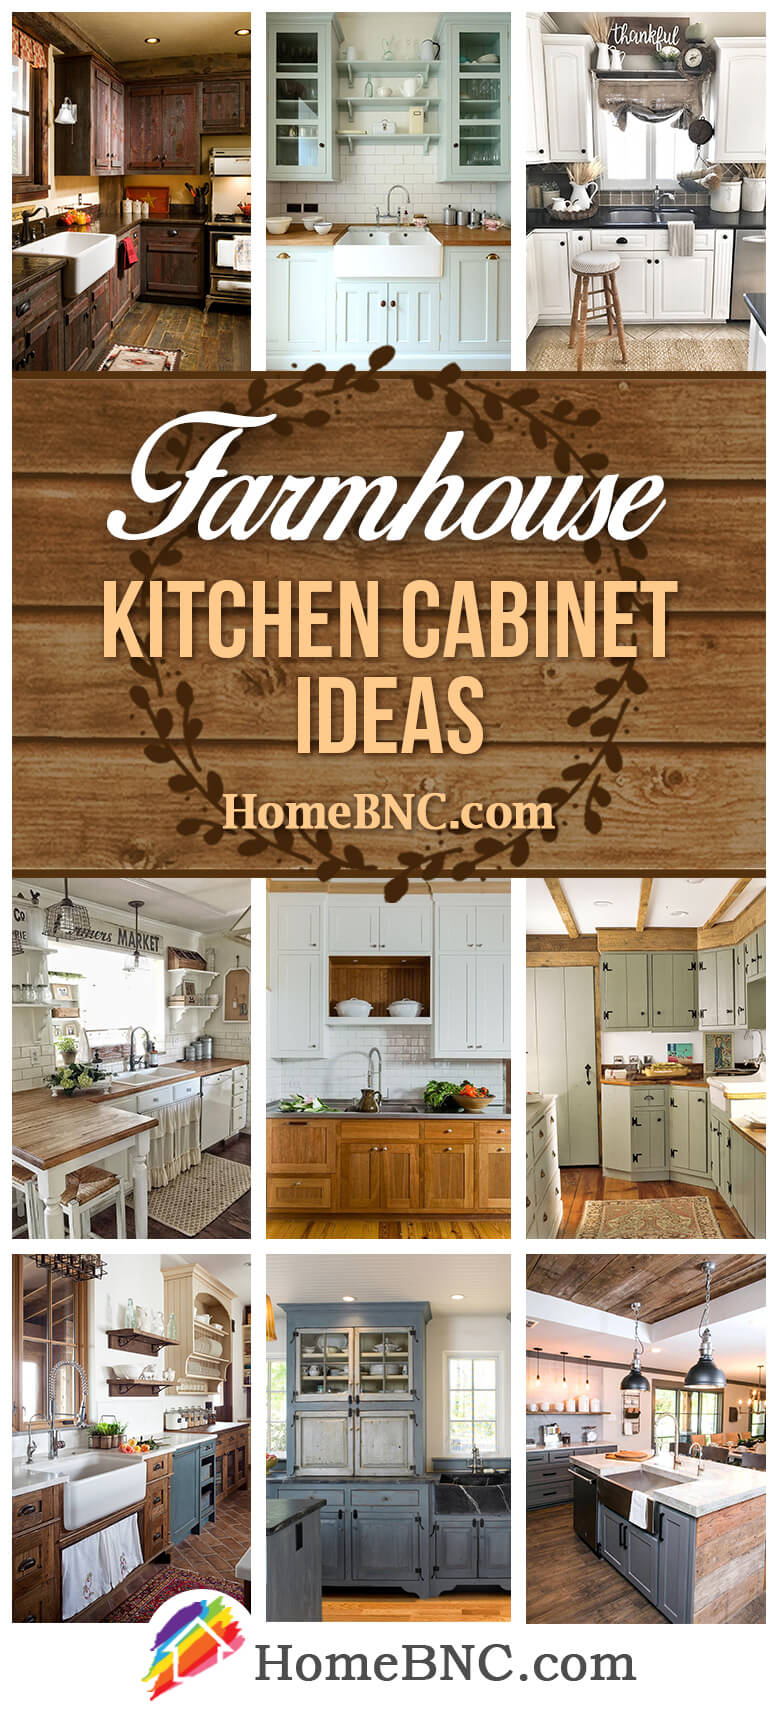 35 Best Farmhouse Kitchen Cabinet Ideas and Designs for 2020 on Farmhouse Kitchen Counter Decor Ideas  id=39044